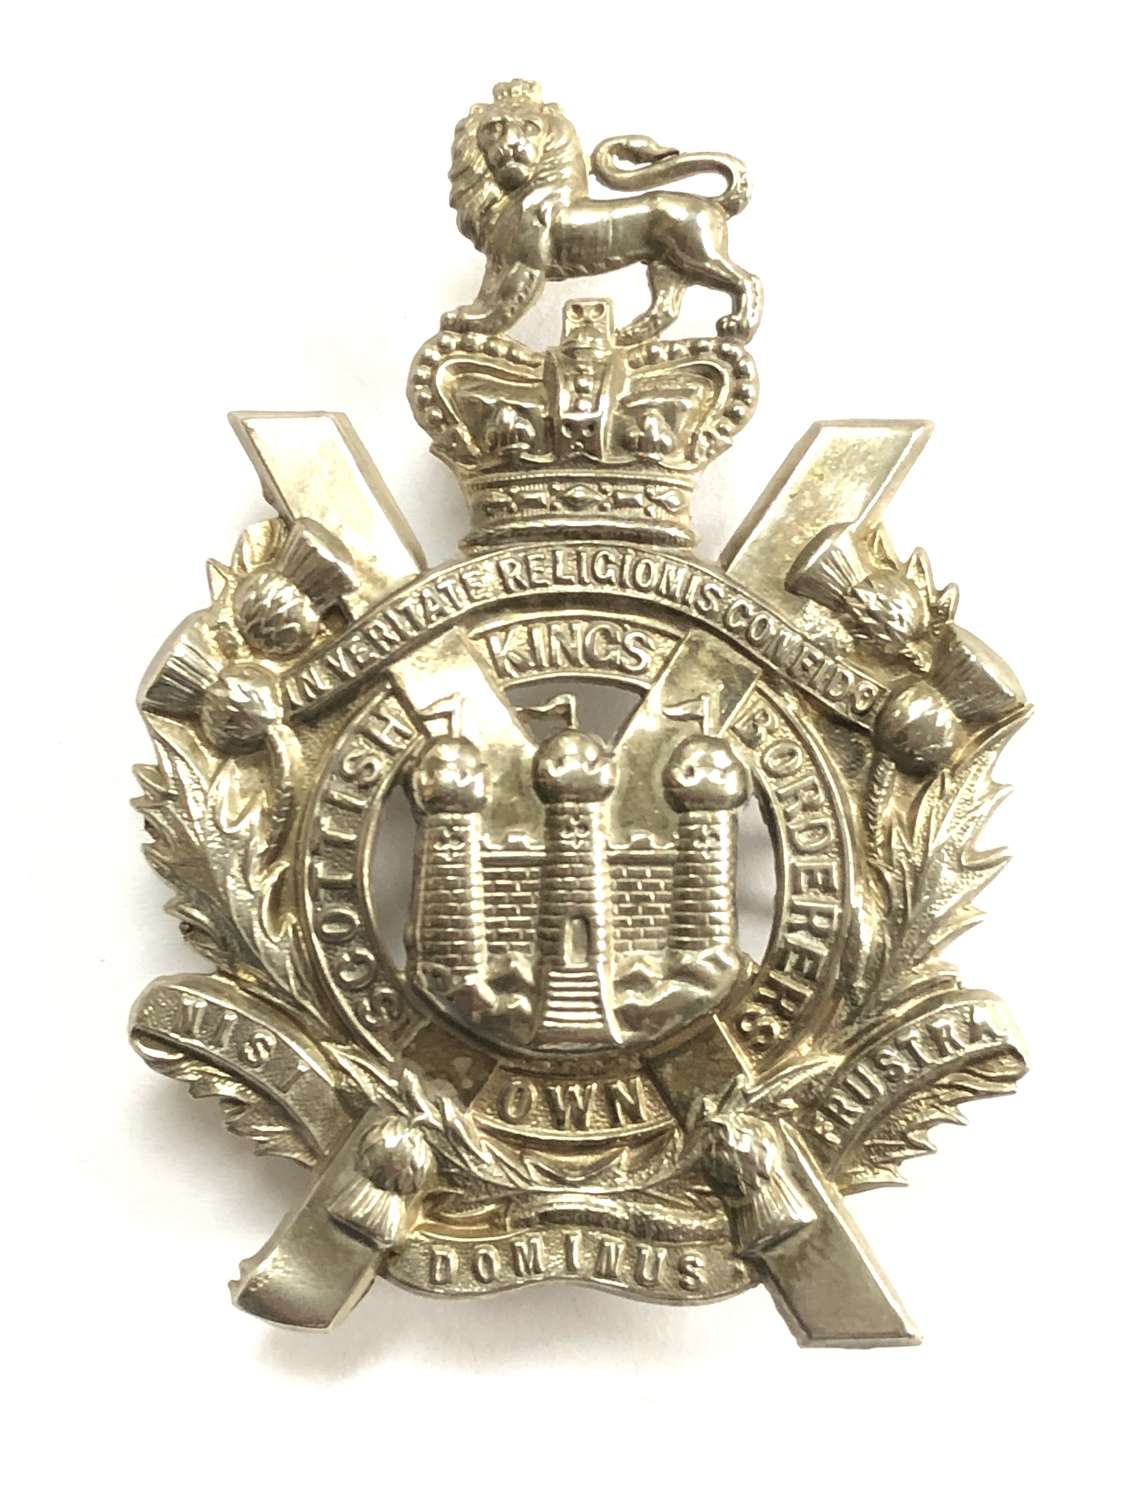 King's Own Scottish Borderers  Victorian glengarry badge by Gaunt